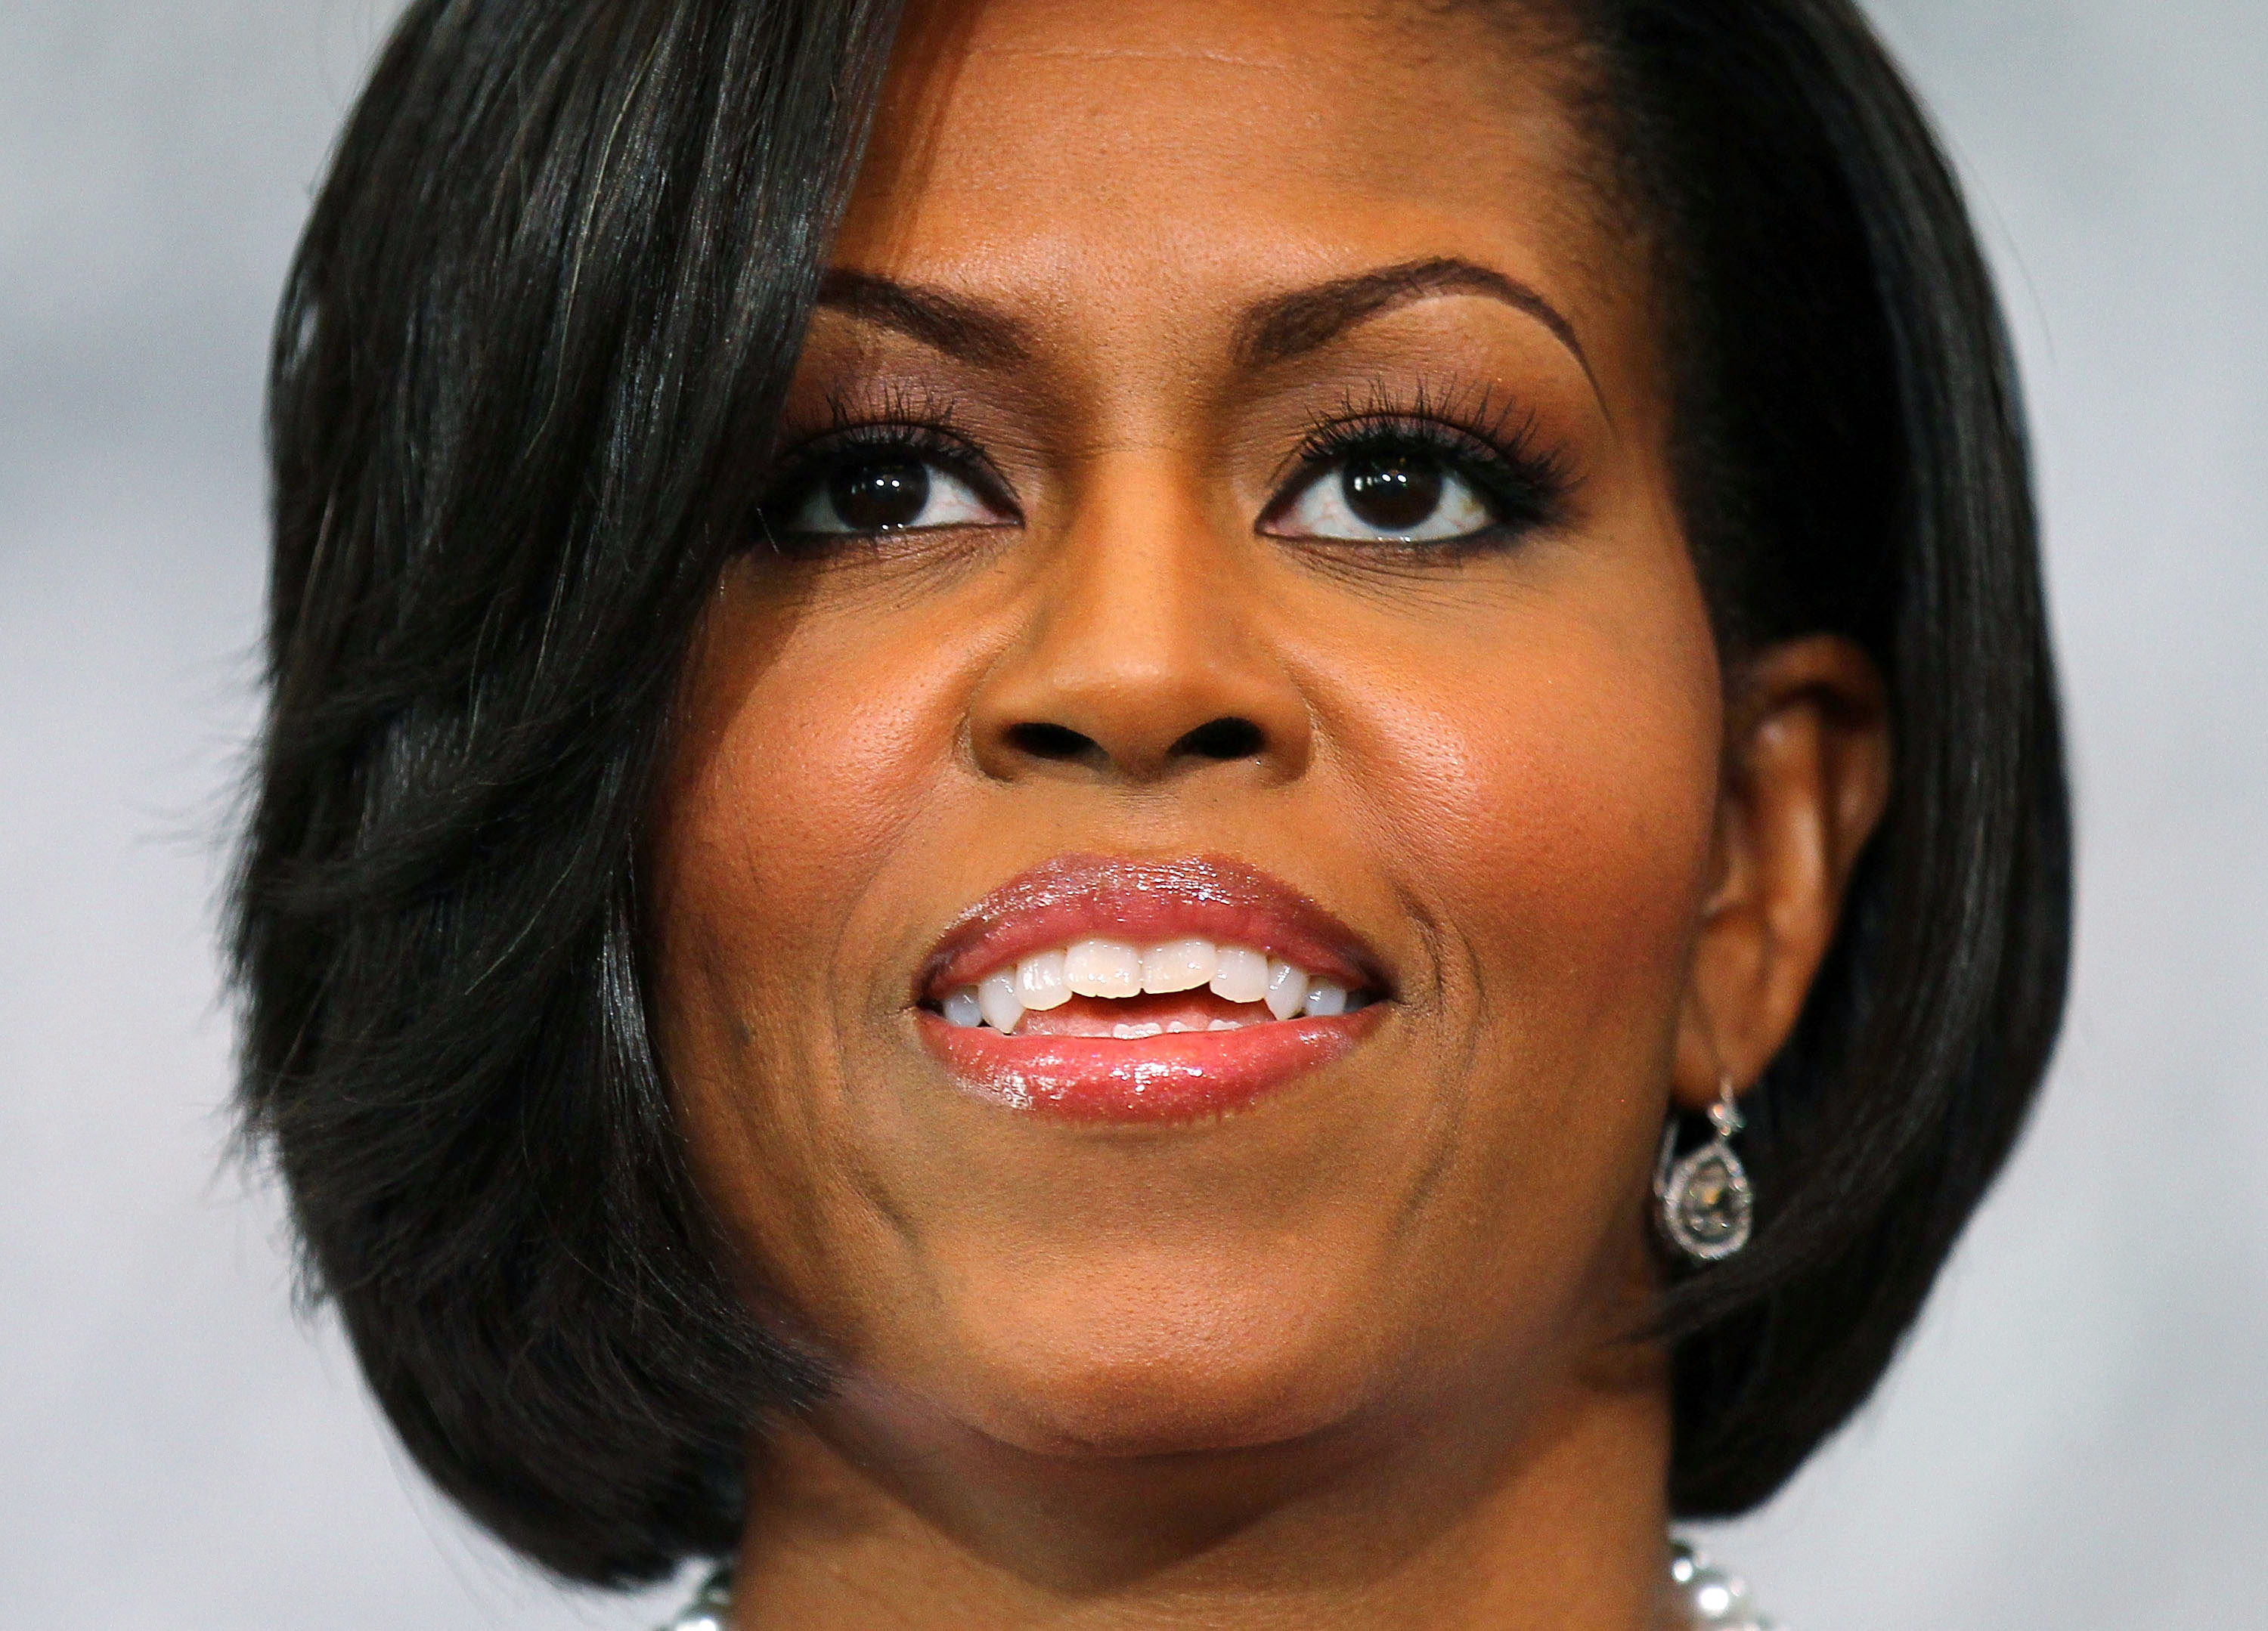 10 More Designers Michelle Obama Should Wear